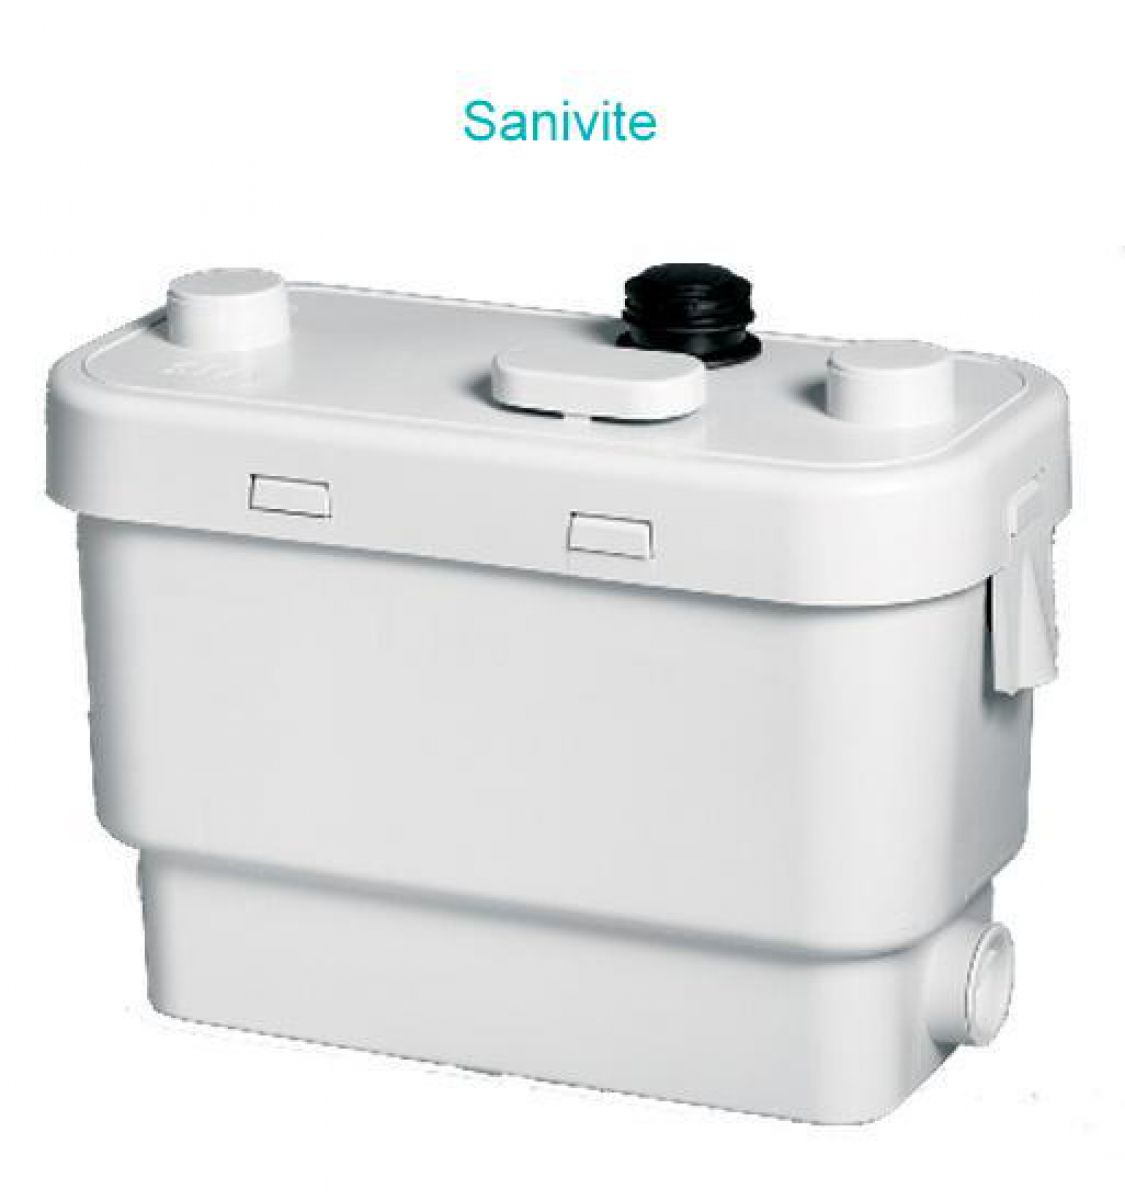 Saniflo Sanivite Utility Pump Uk Bathrooms